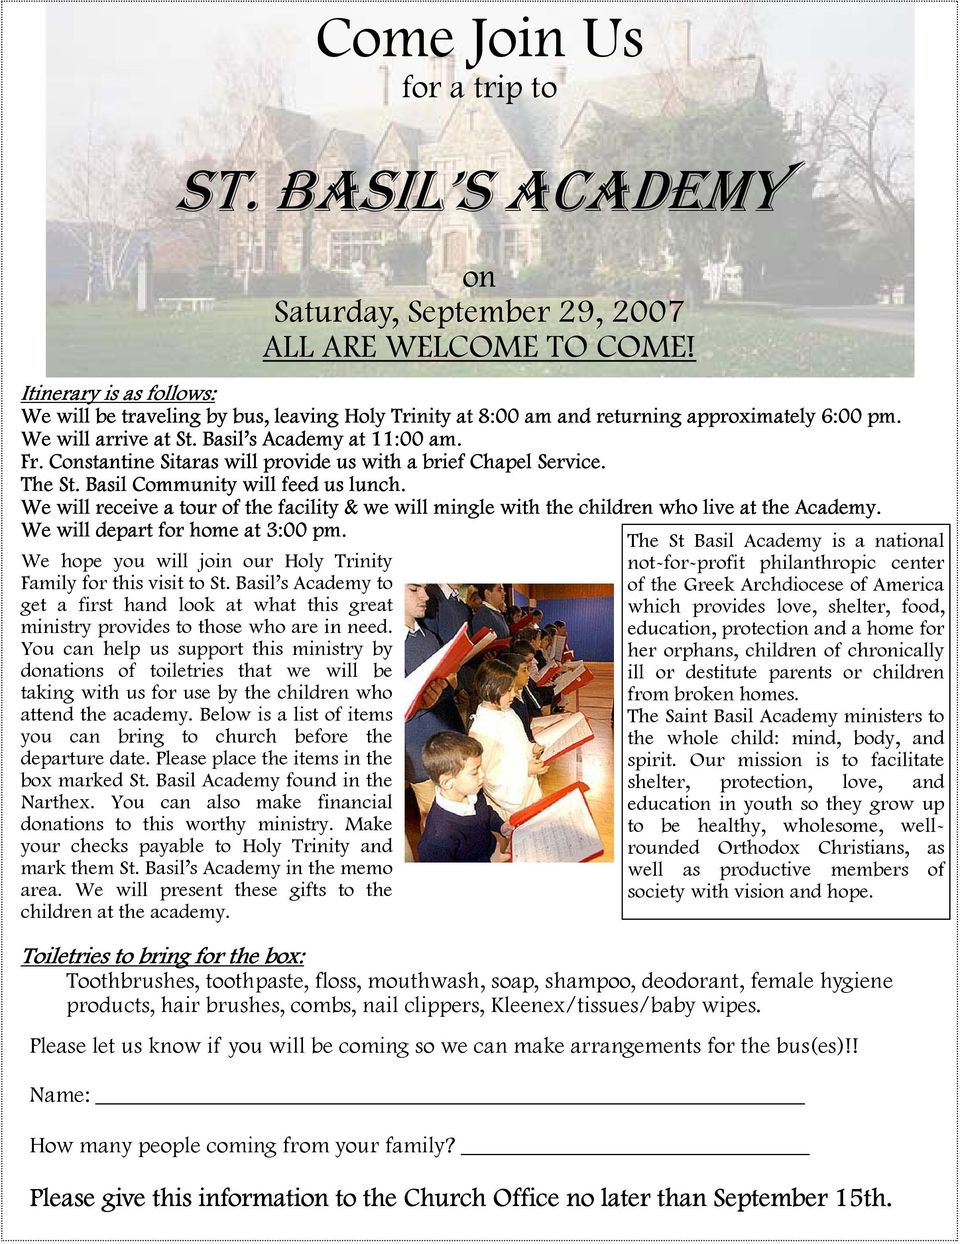 Constantine Sitaras will provide us with a brief Chapel Service. The St. Basil Community will feed us lunch.